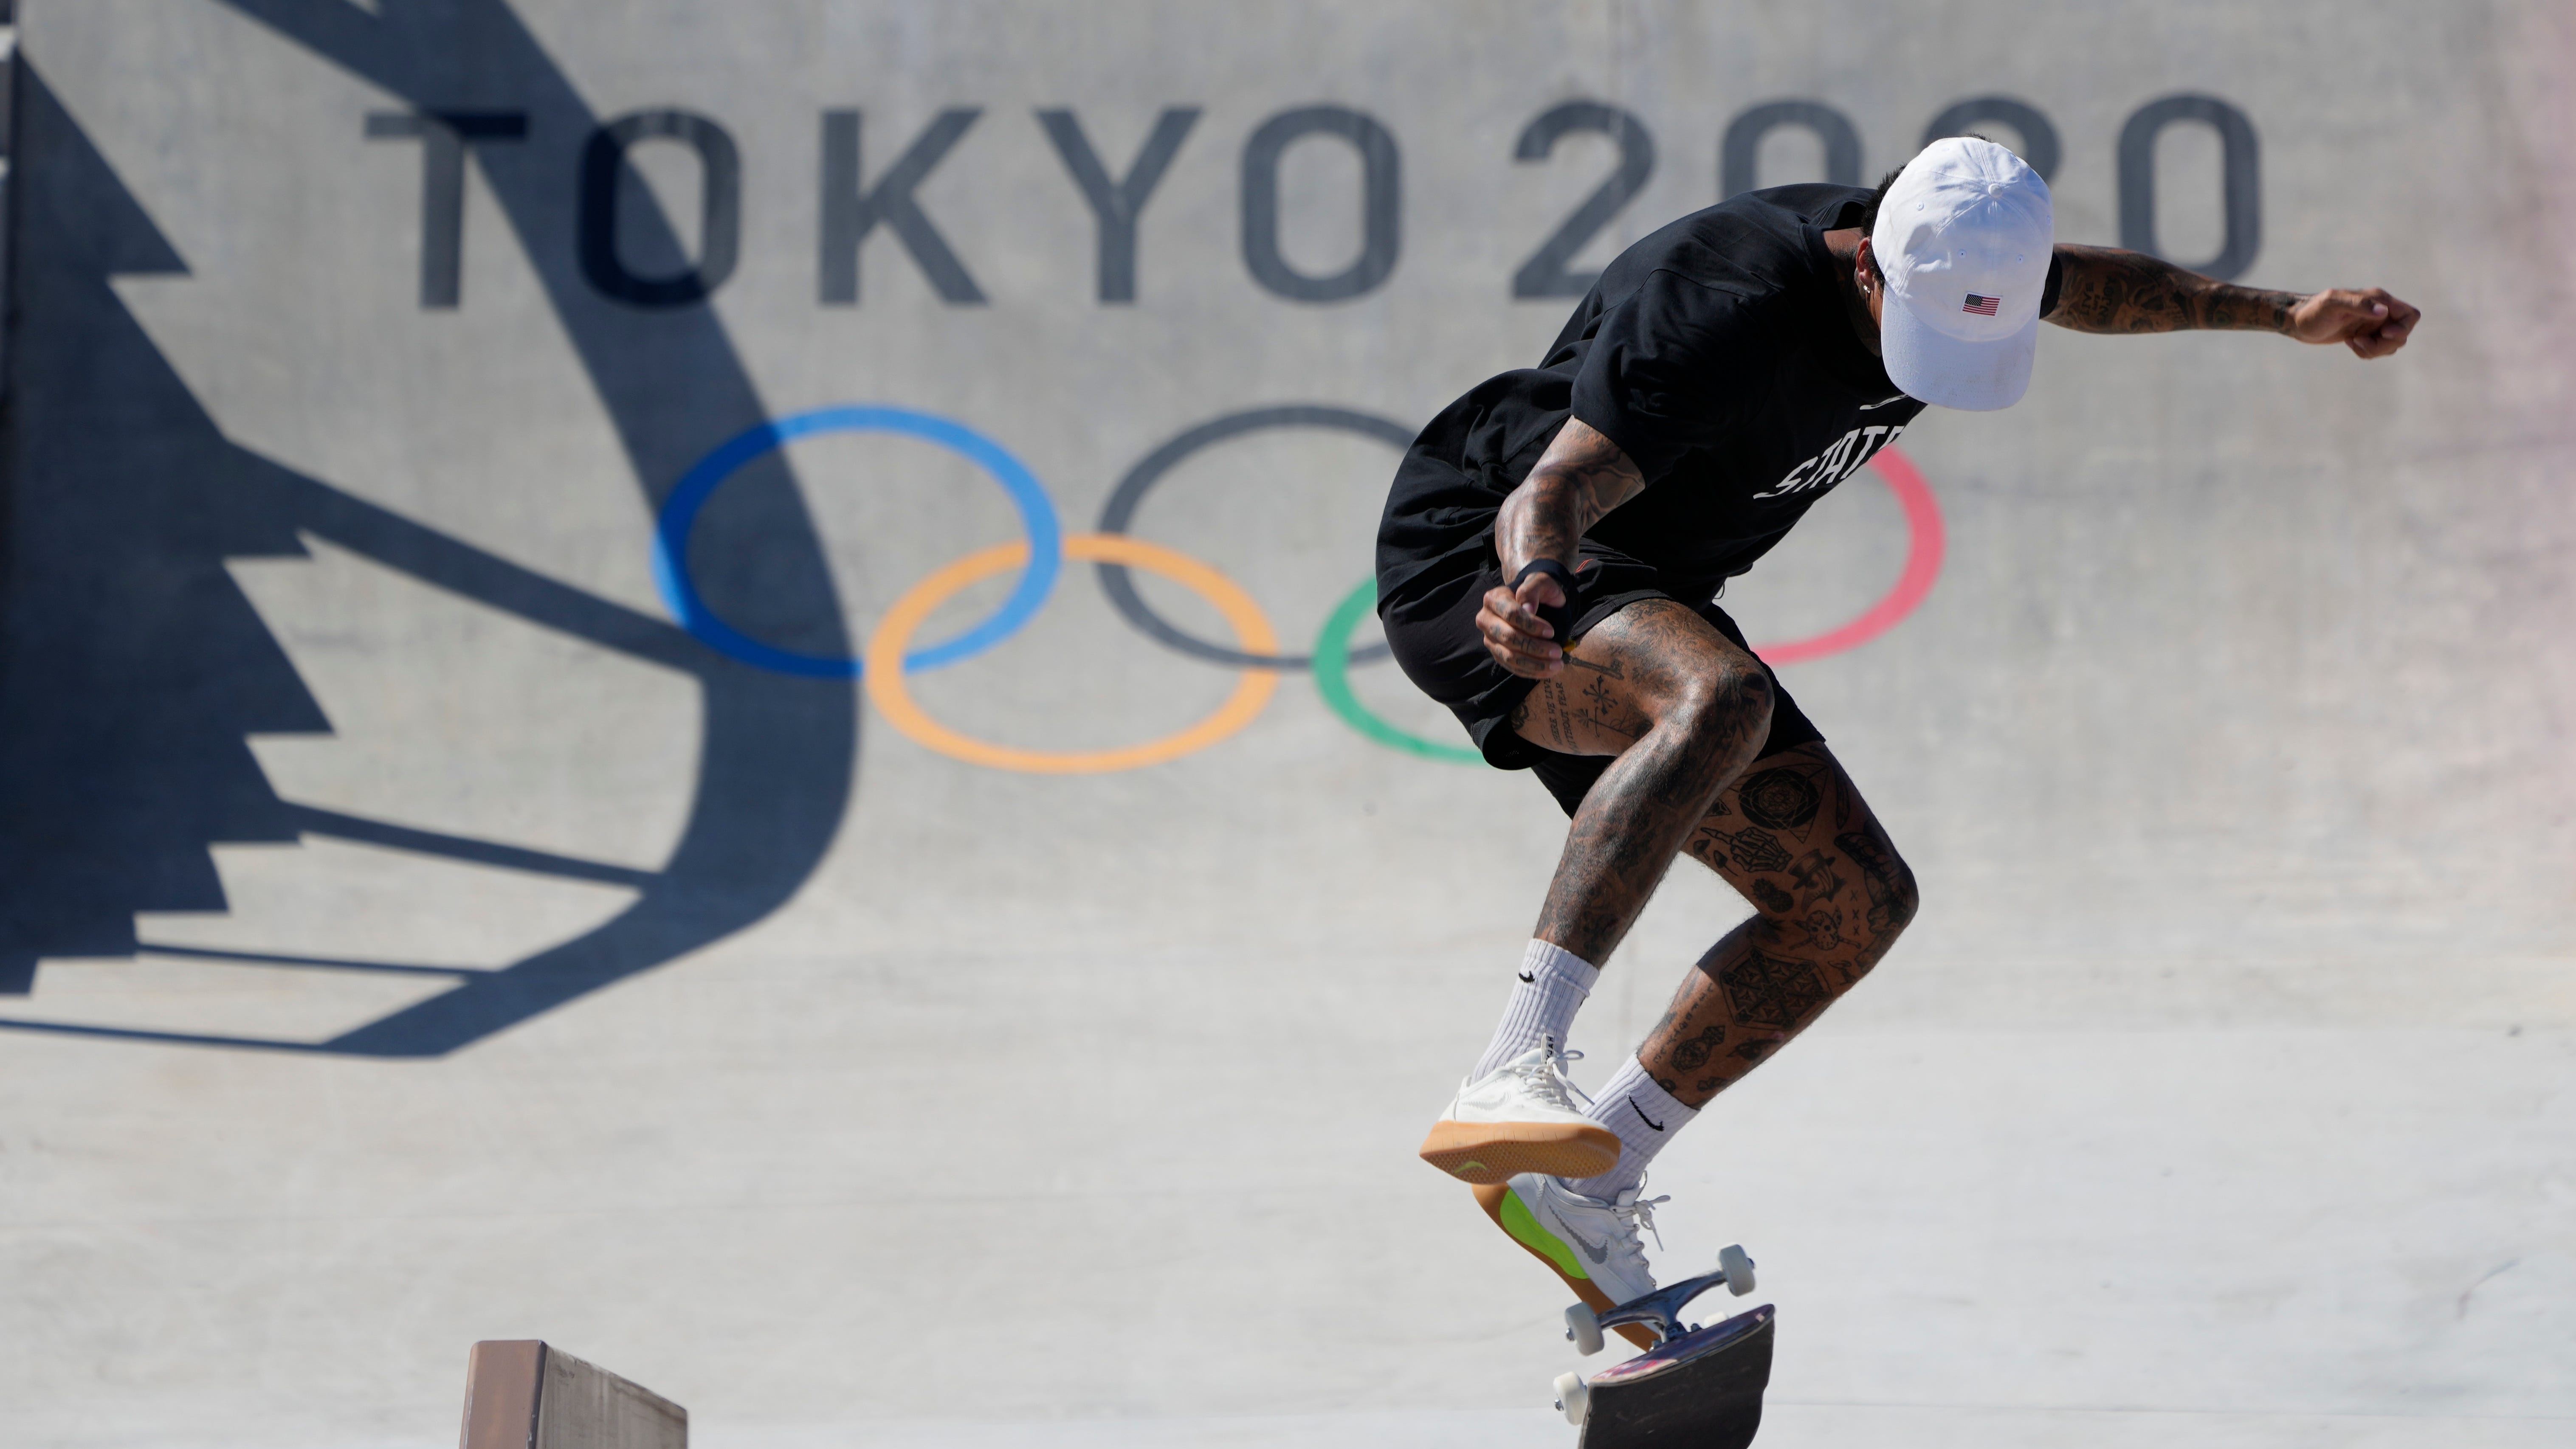 Nyjah Huston, of the United States, trains during a street skateboarding practice session at the 2020 Summer Olympics, Wednesday, July 21, 2021, in Tokyo, Japan.